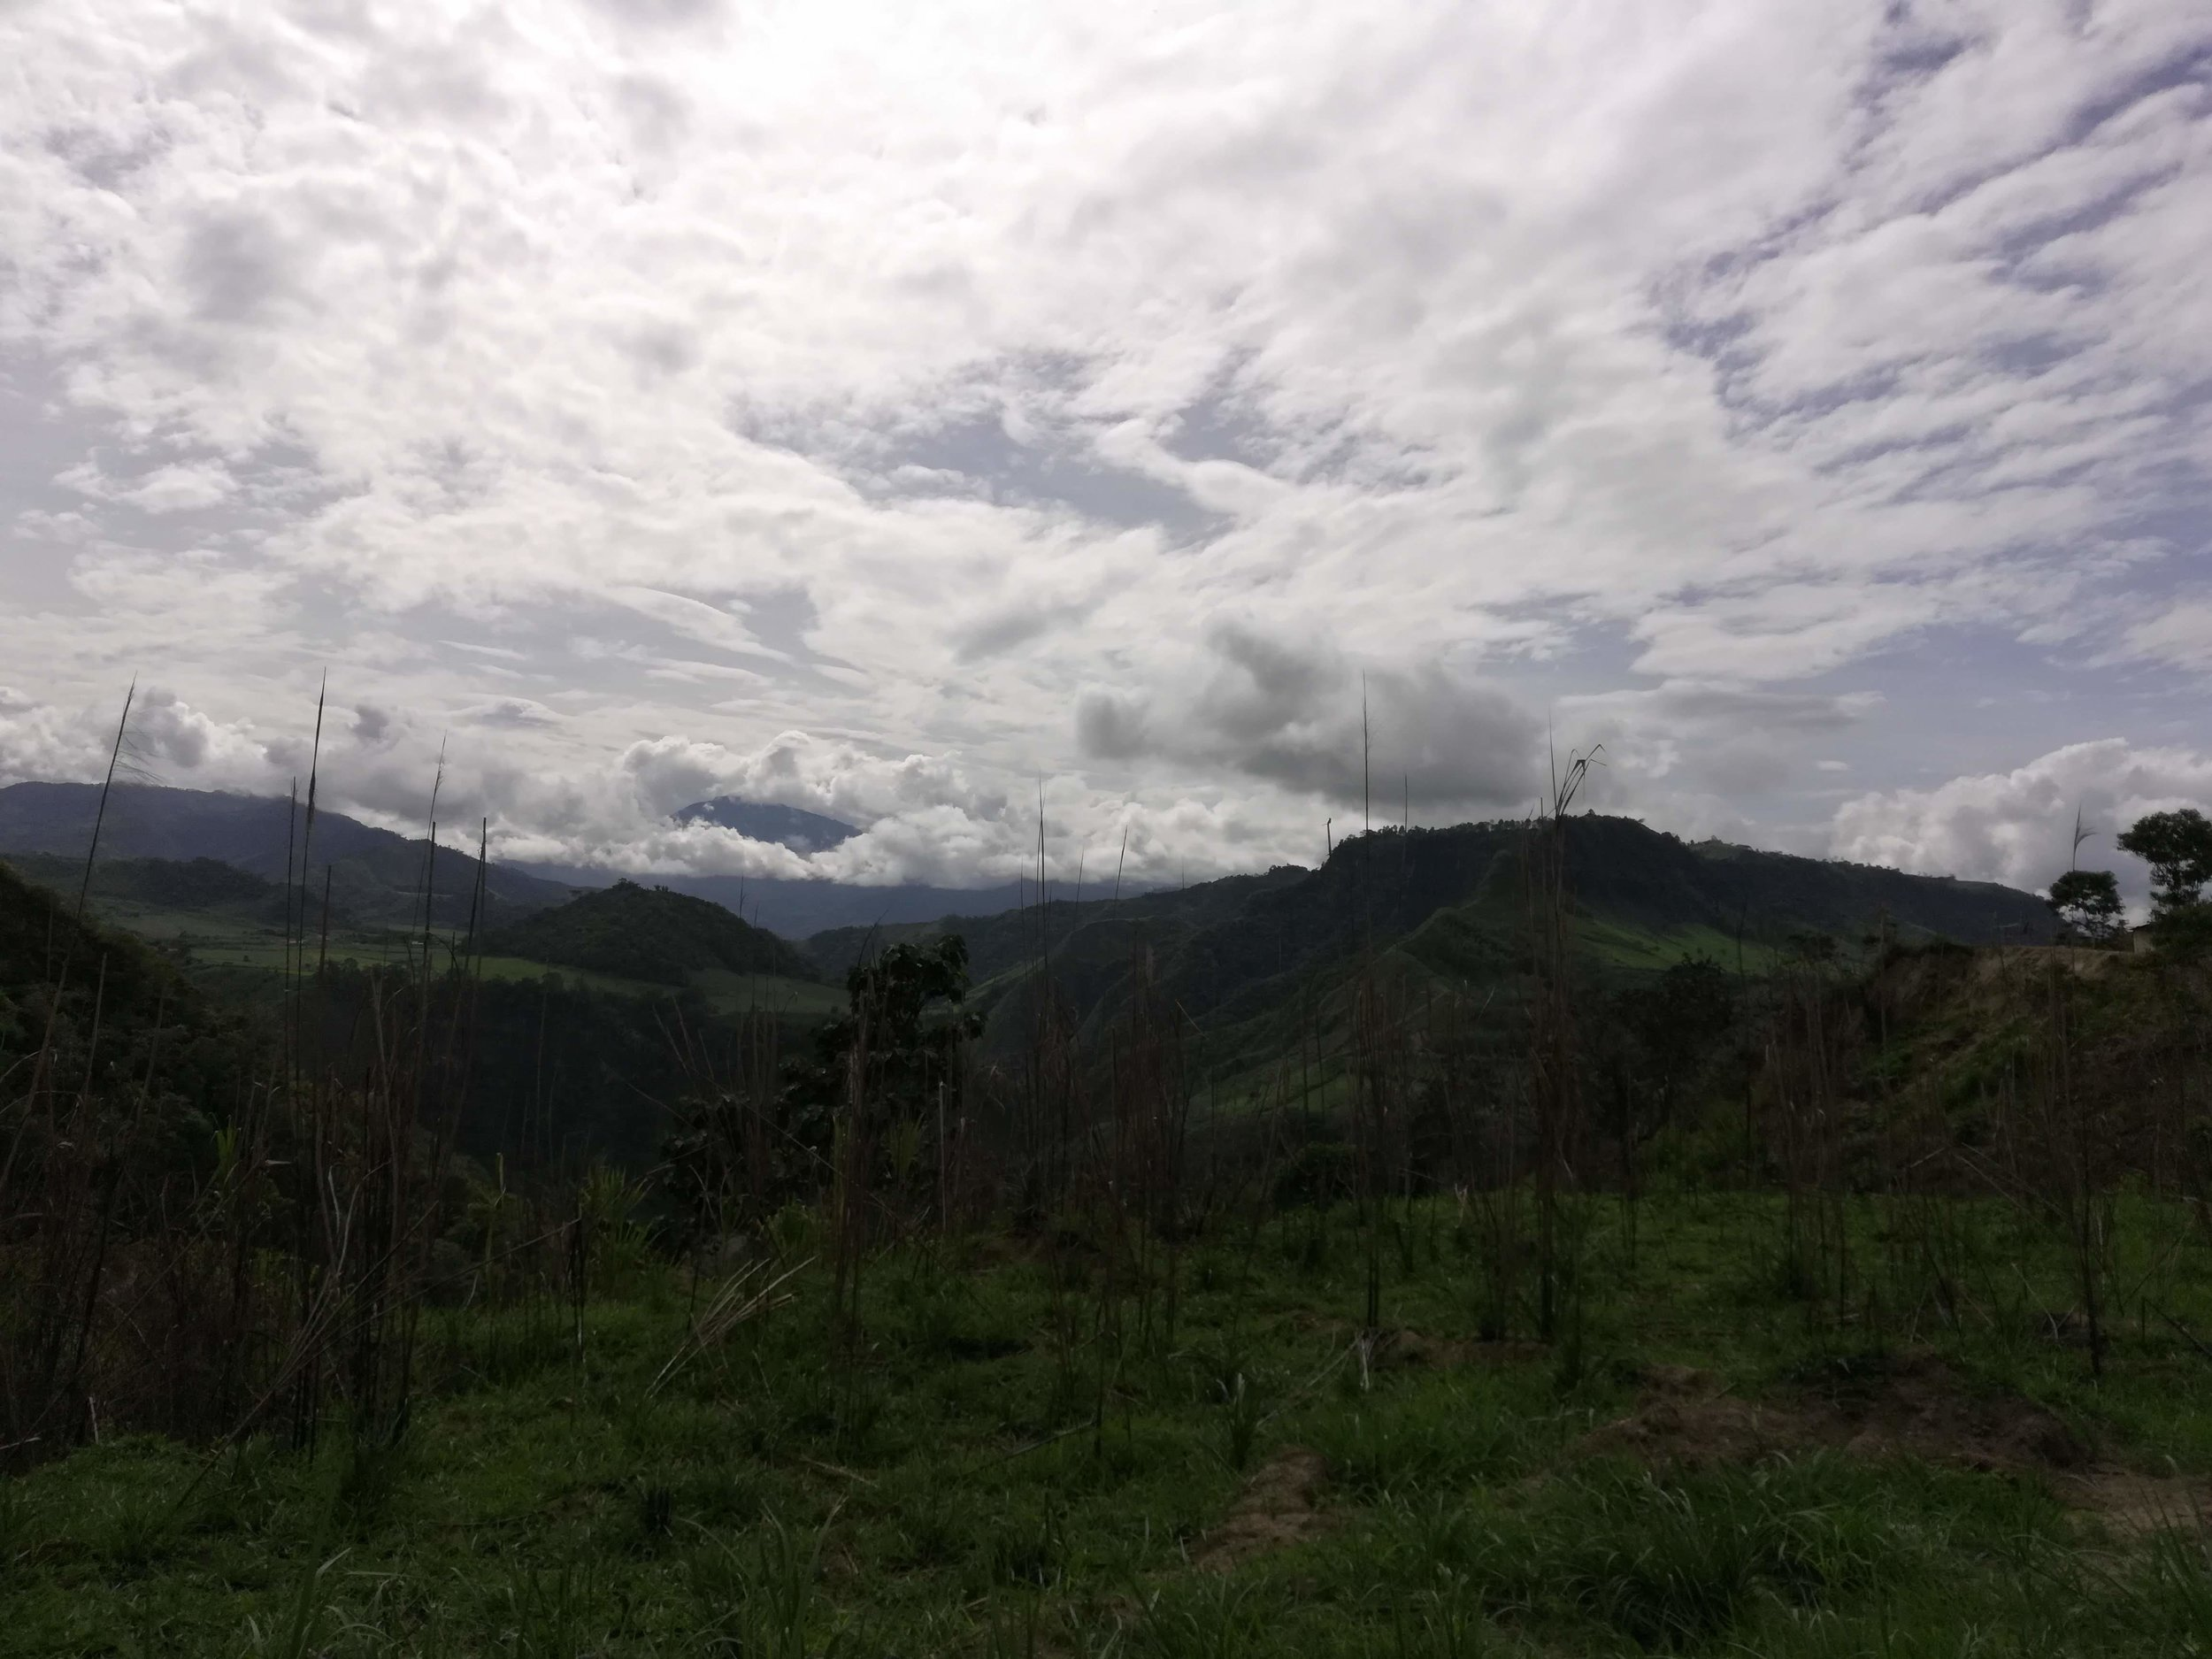 Through the Andes, on the way to Otavalo